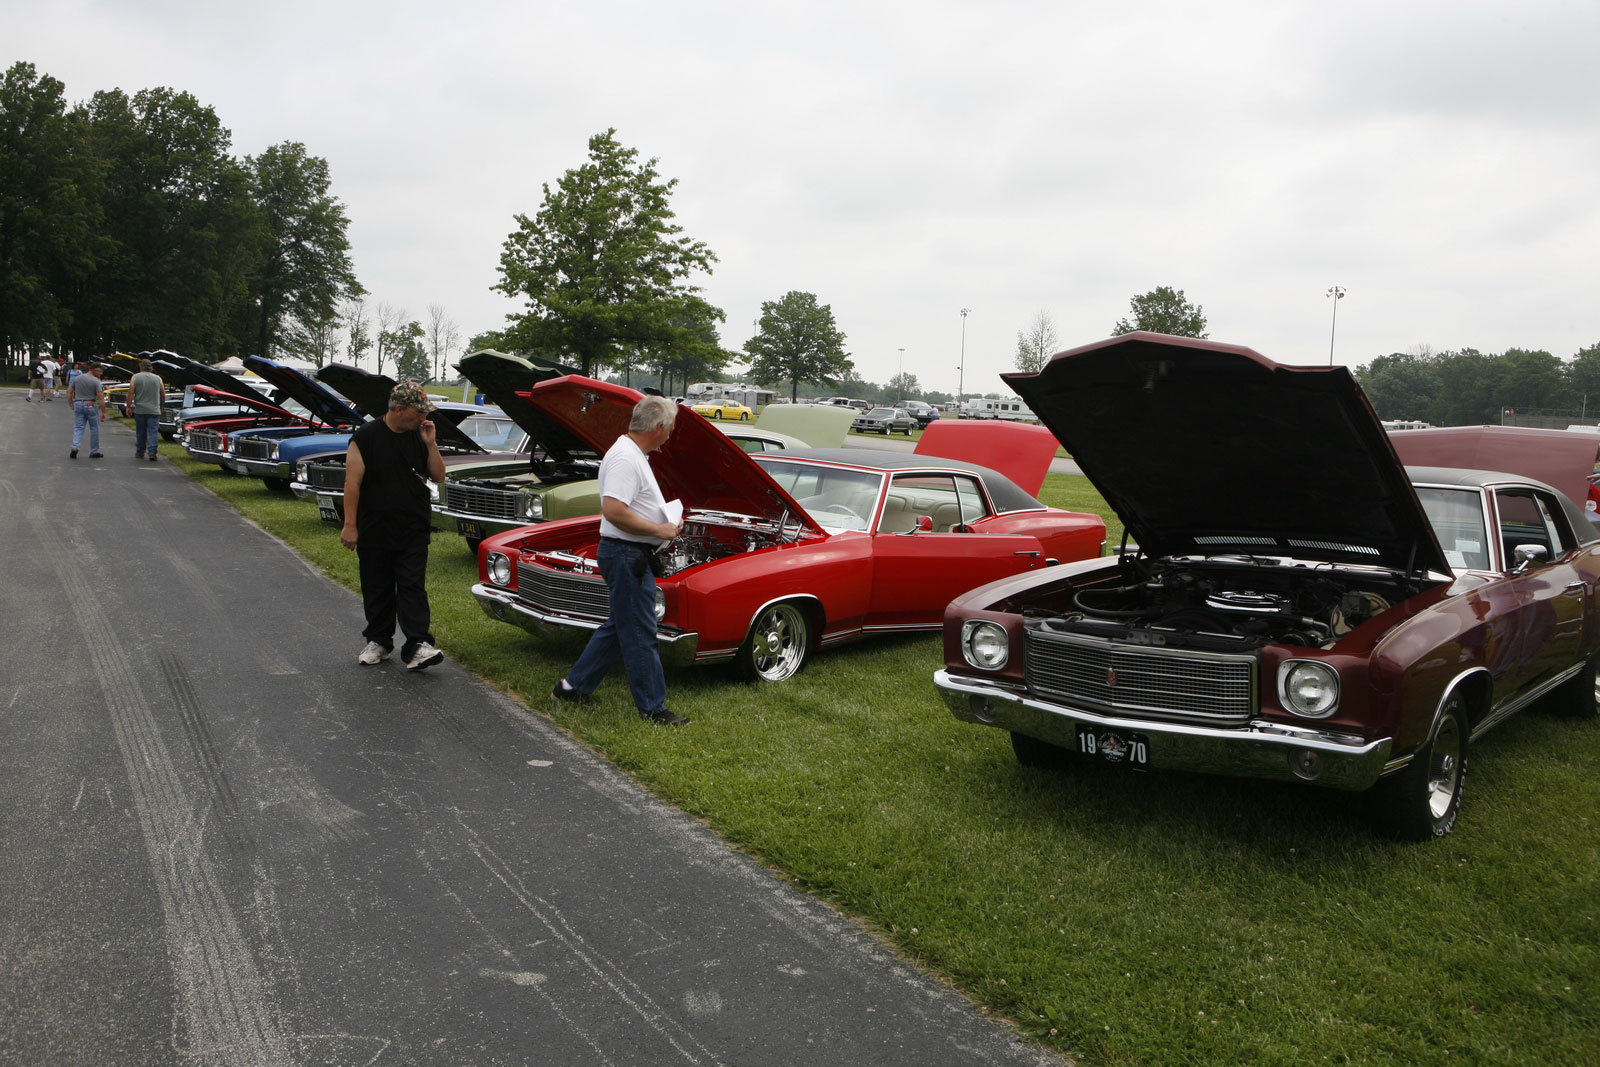 Sucp_1006w_07 Super_chevy_show_2010 Norwalk_ohio